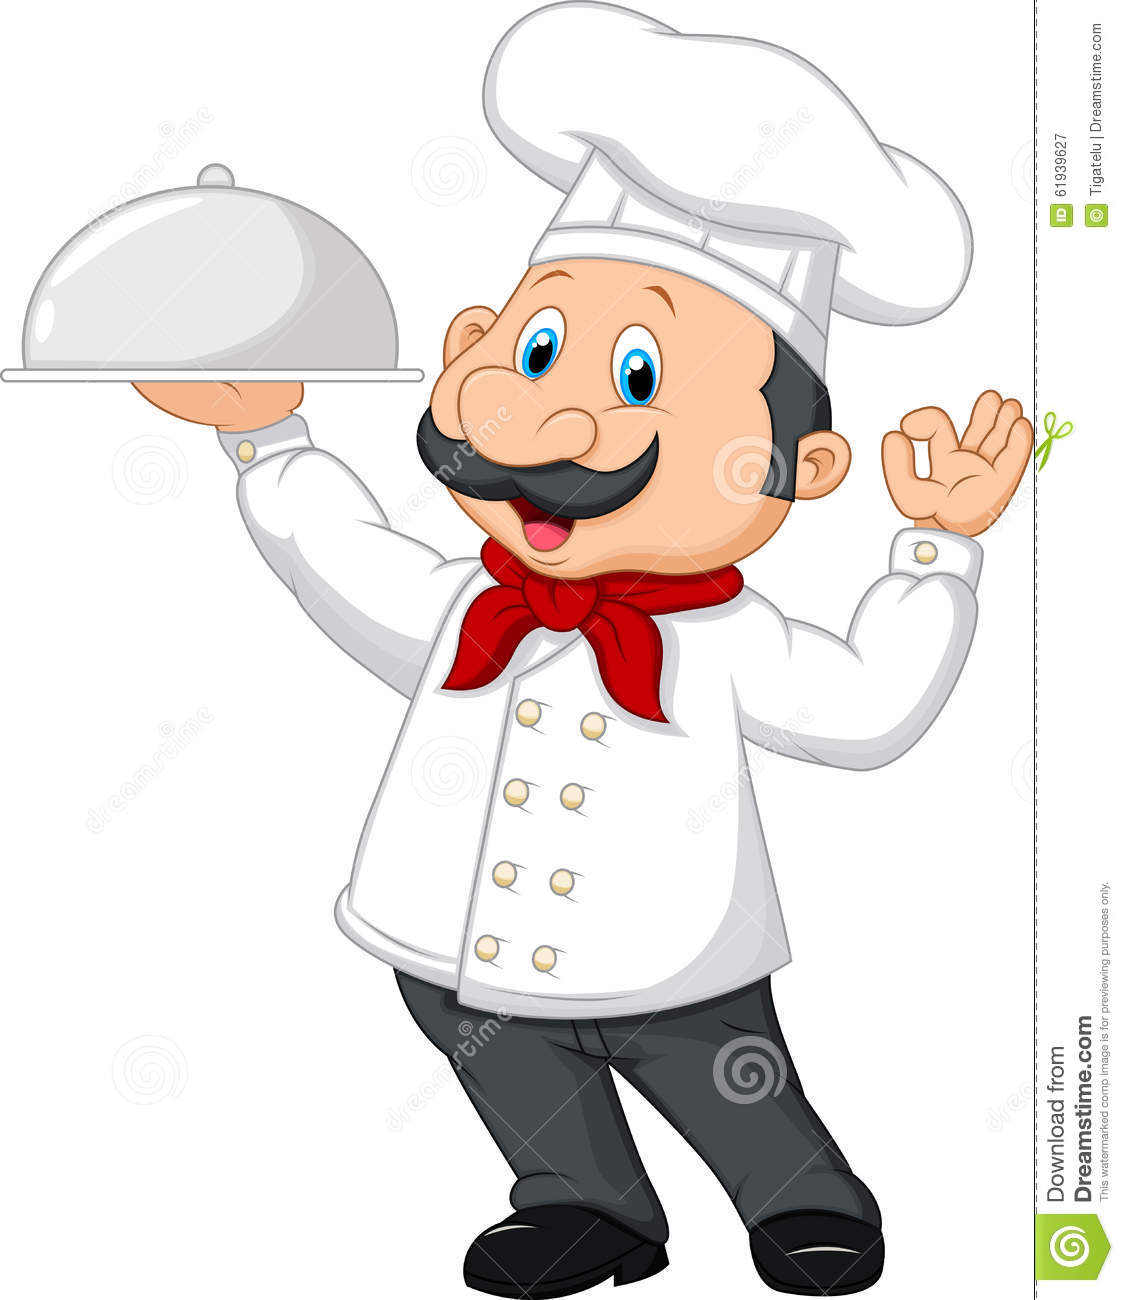 Cartoon Funny Chef With A Moustache Holding A Silver